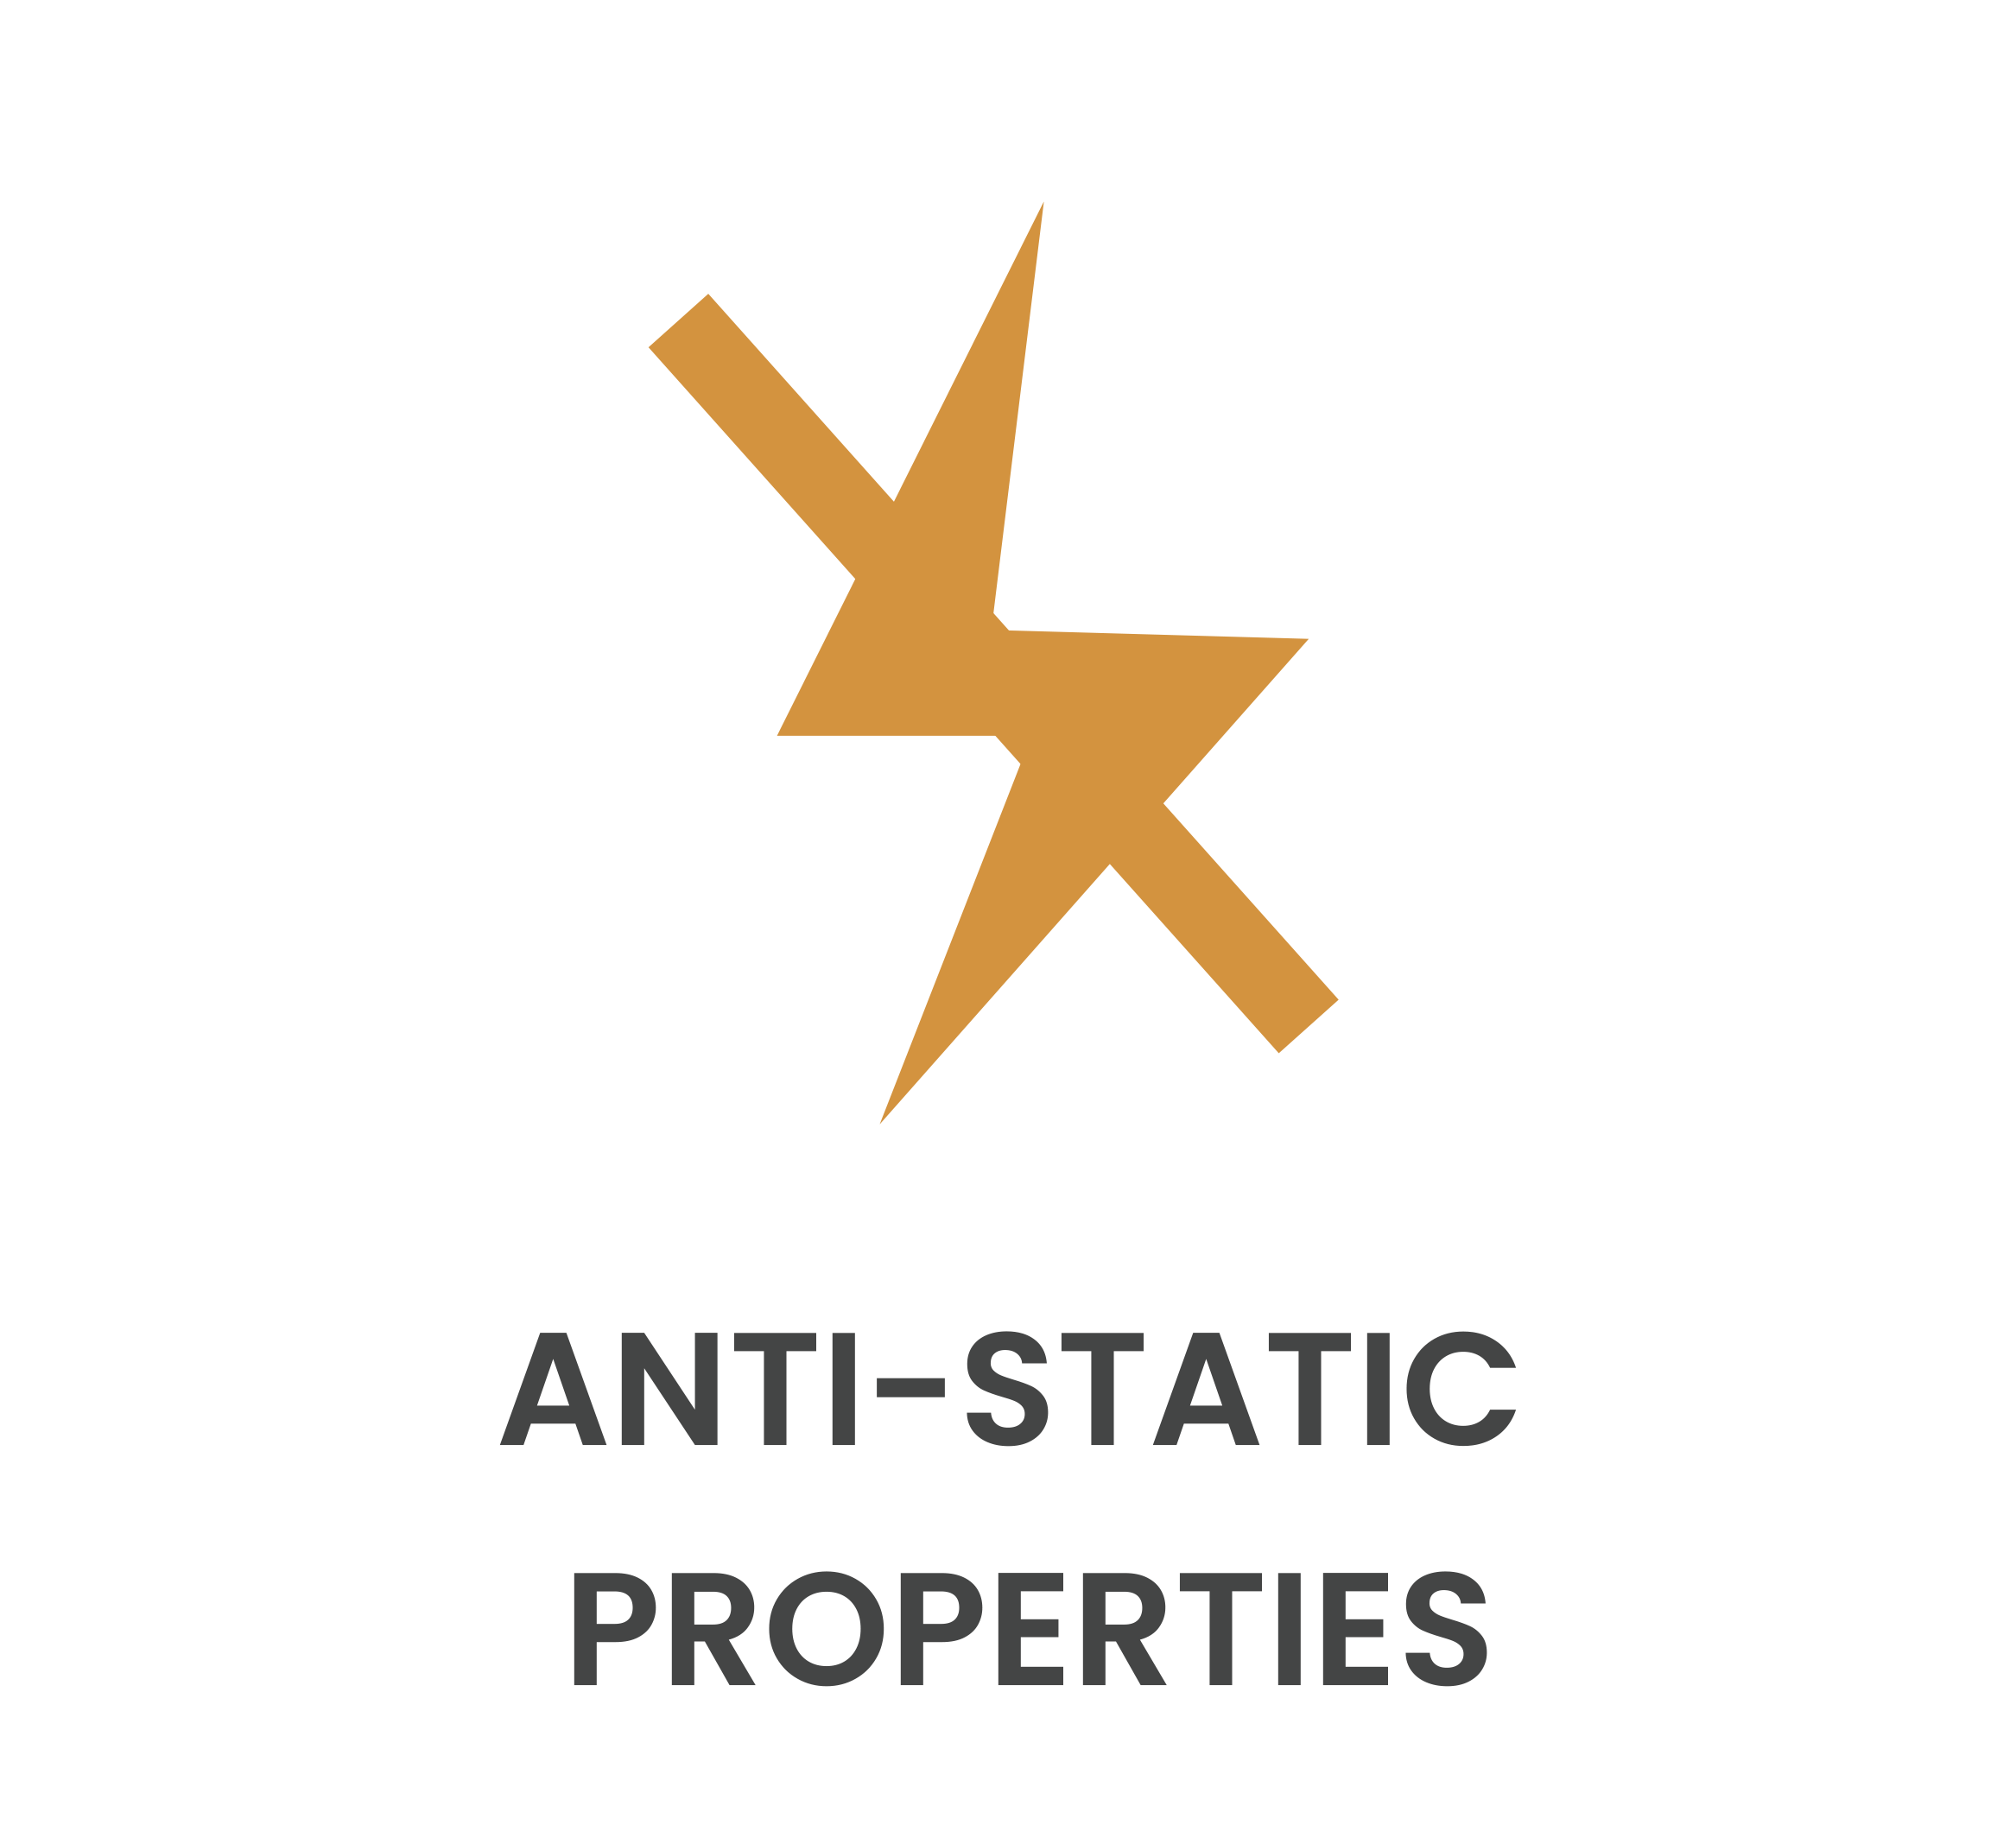 Anti-Static Properties